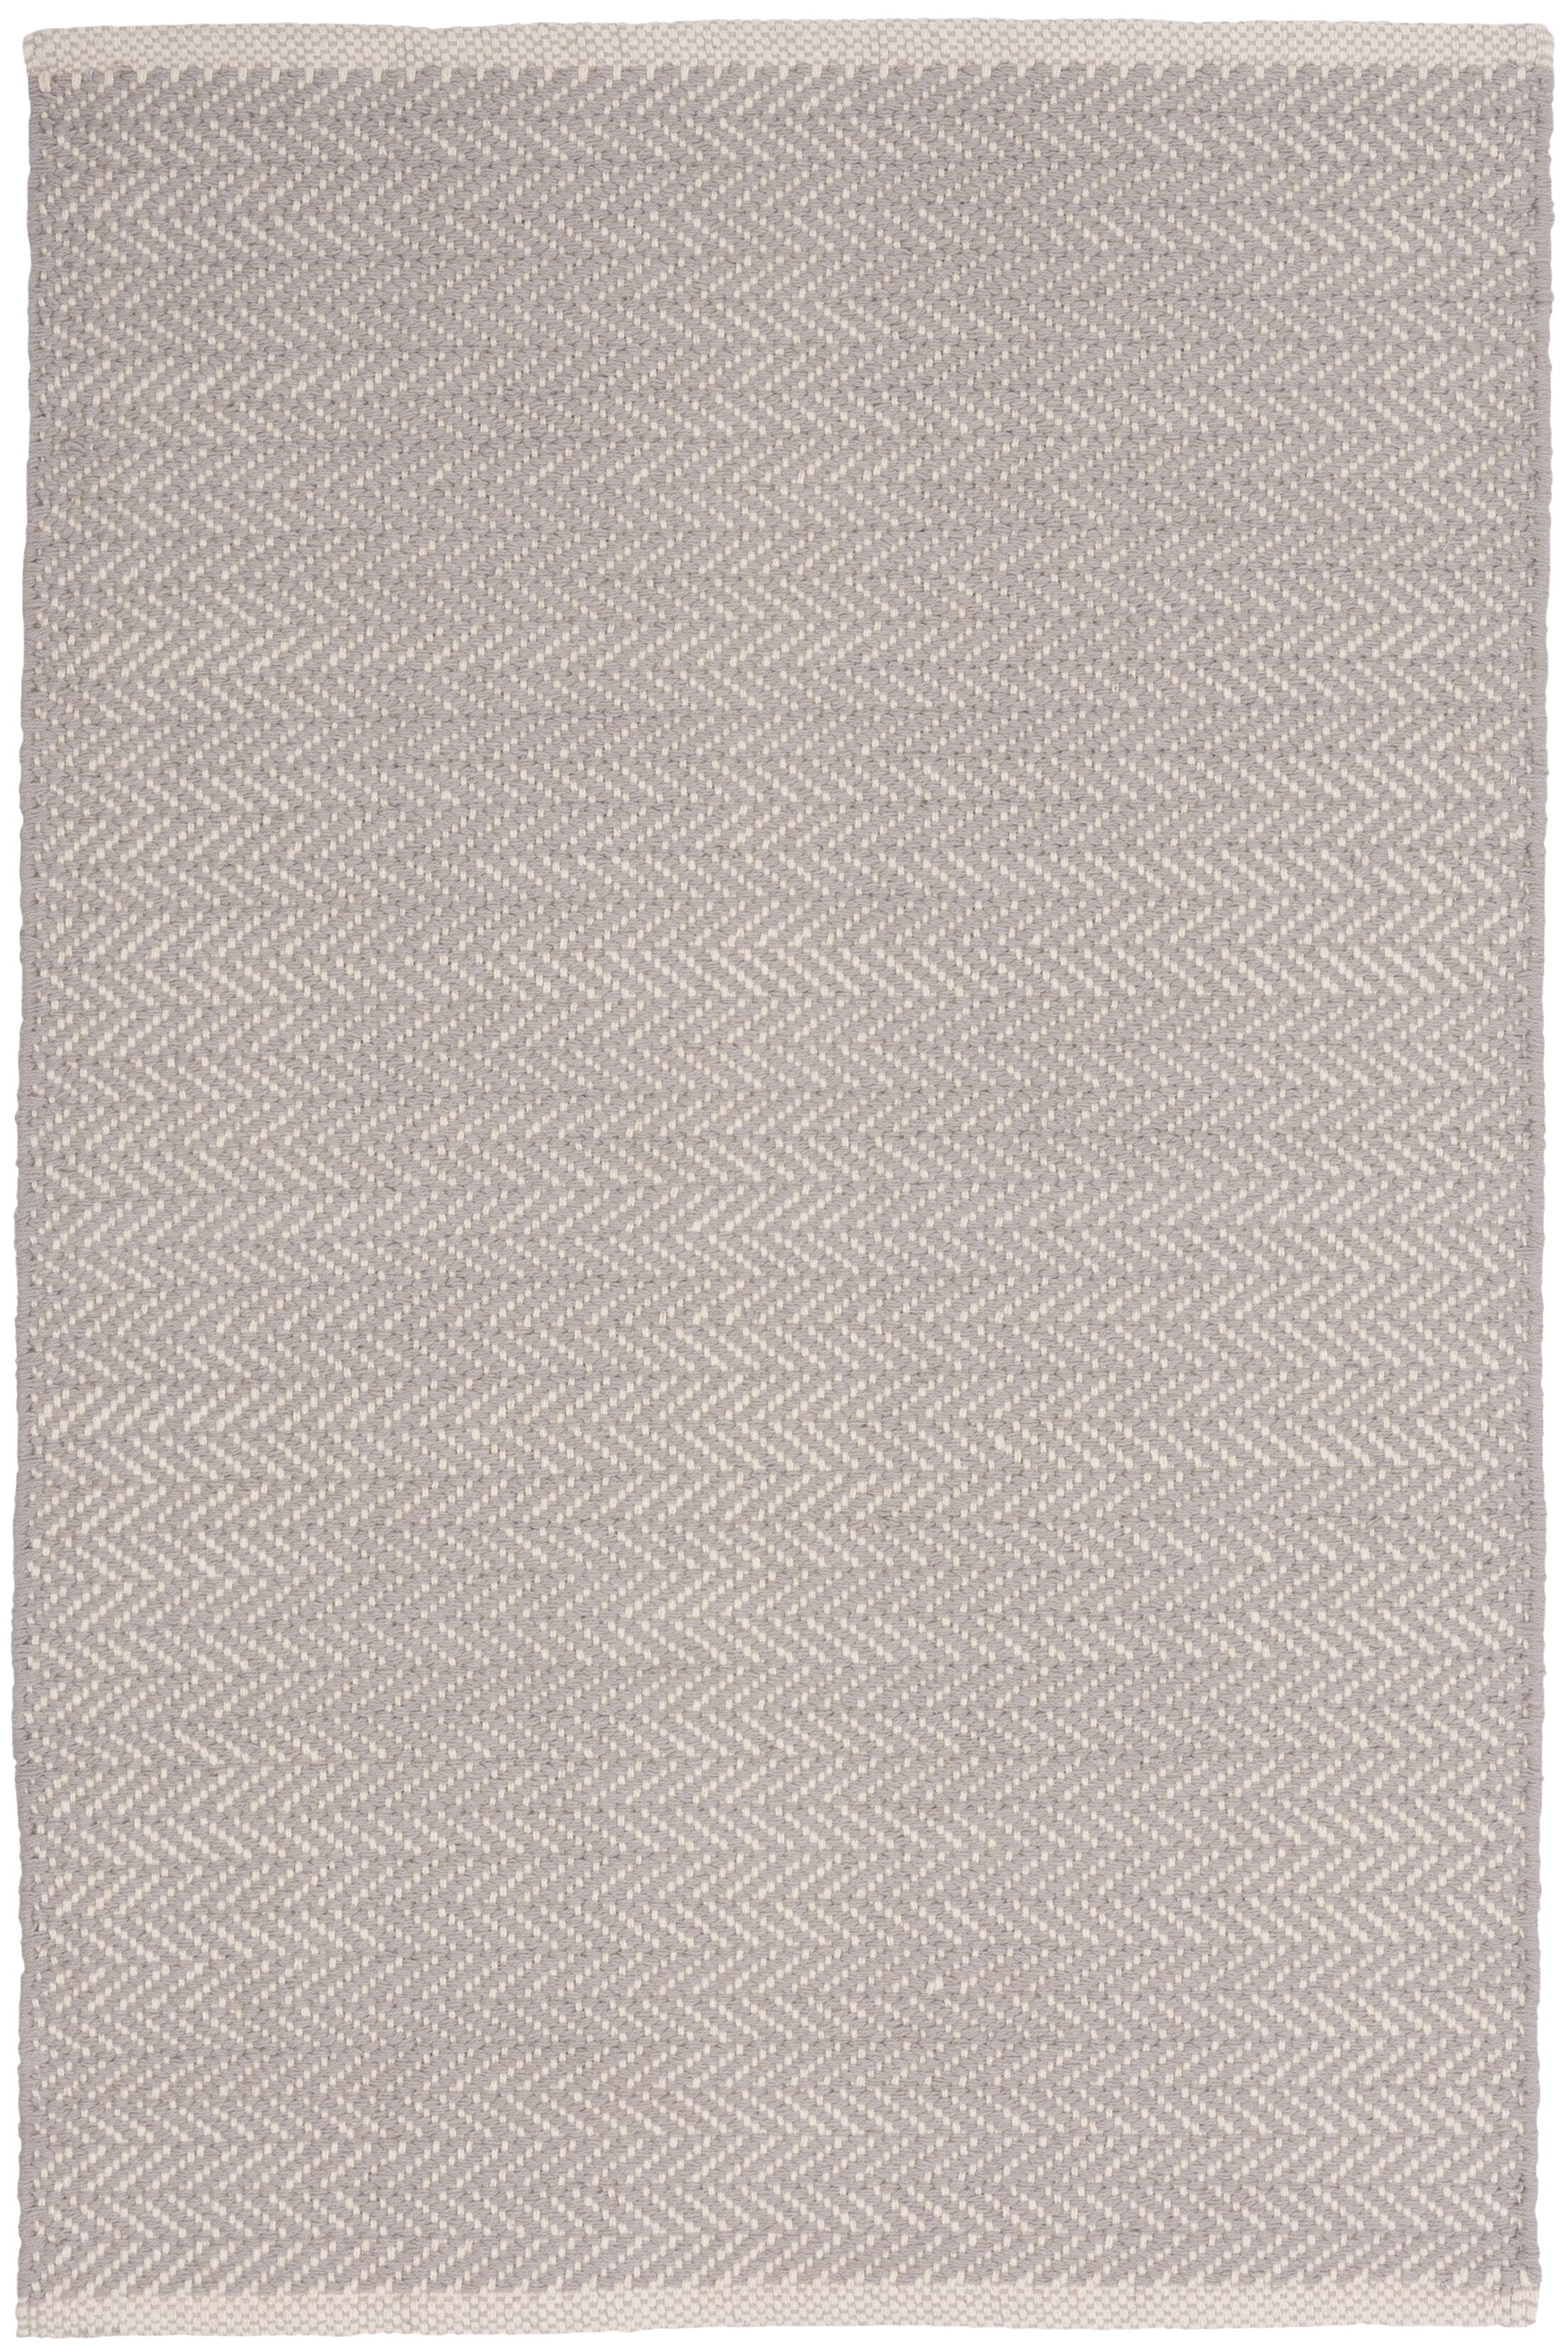 Herringbone Hand-Woven Grey Area Rug Rug Size: Rectangle 8' x 10'